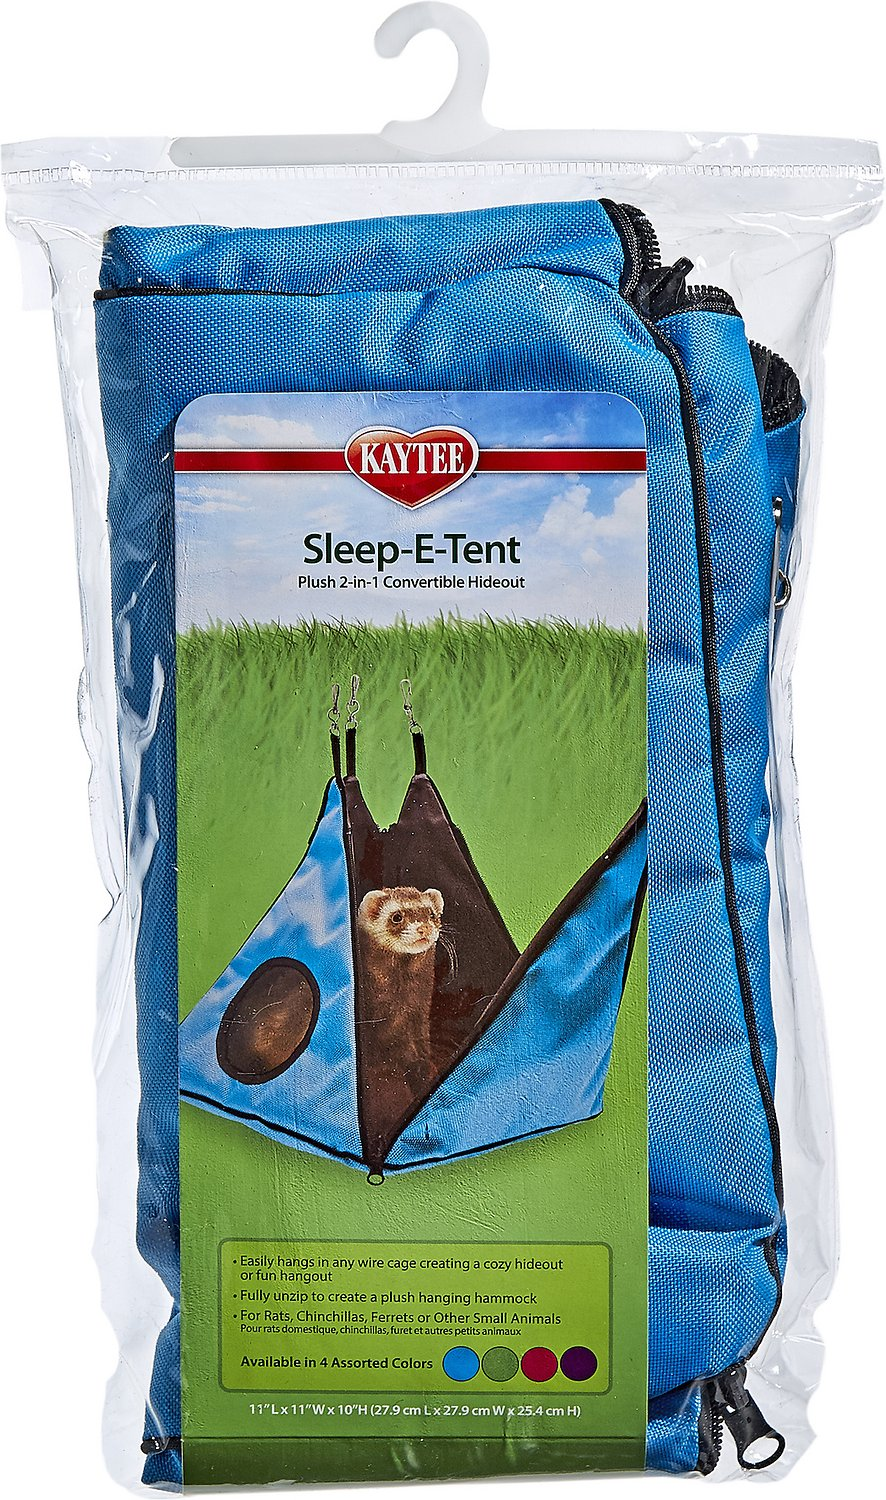 video  sc 1 st  Chewy.com & Kaytee Sleep-E-Tent Ferret Convertible Hideout 11-inch - Chewy.com